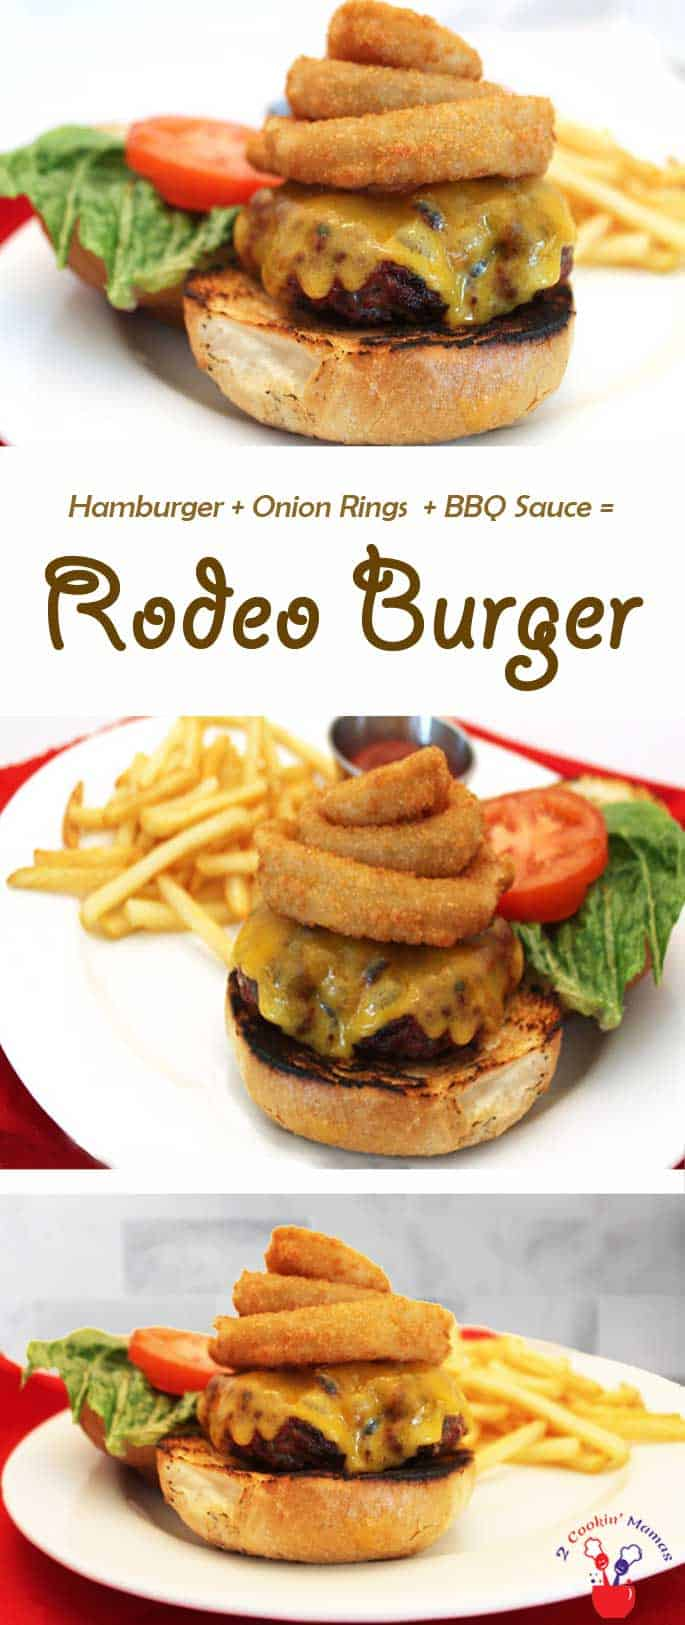 Rodeo Burger | 2 Cookin Mamas Want your burger & onion rings too? Grill up this classic recipe for a mouthwatering Rodeo Burger! Add cheese, a side of fries & it's heaven!